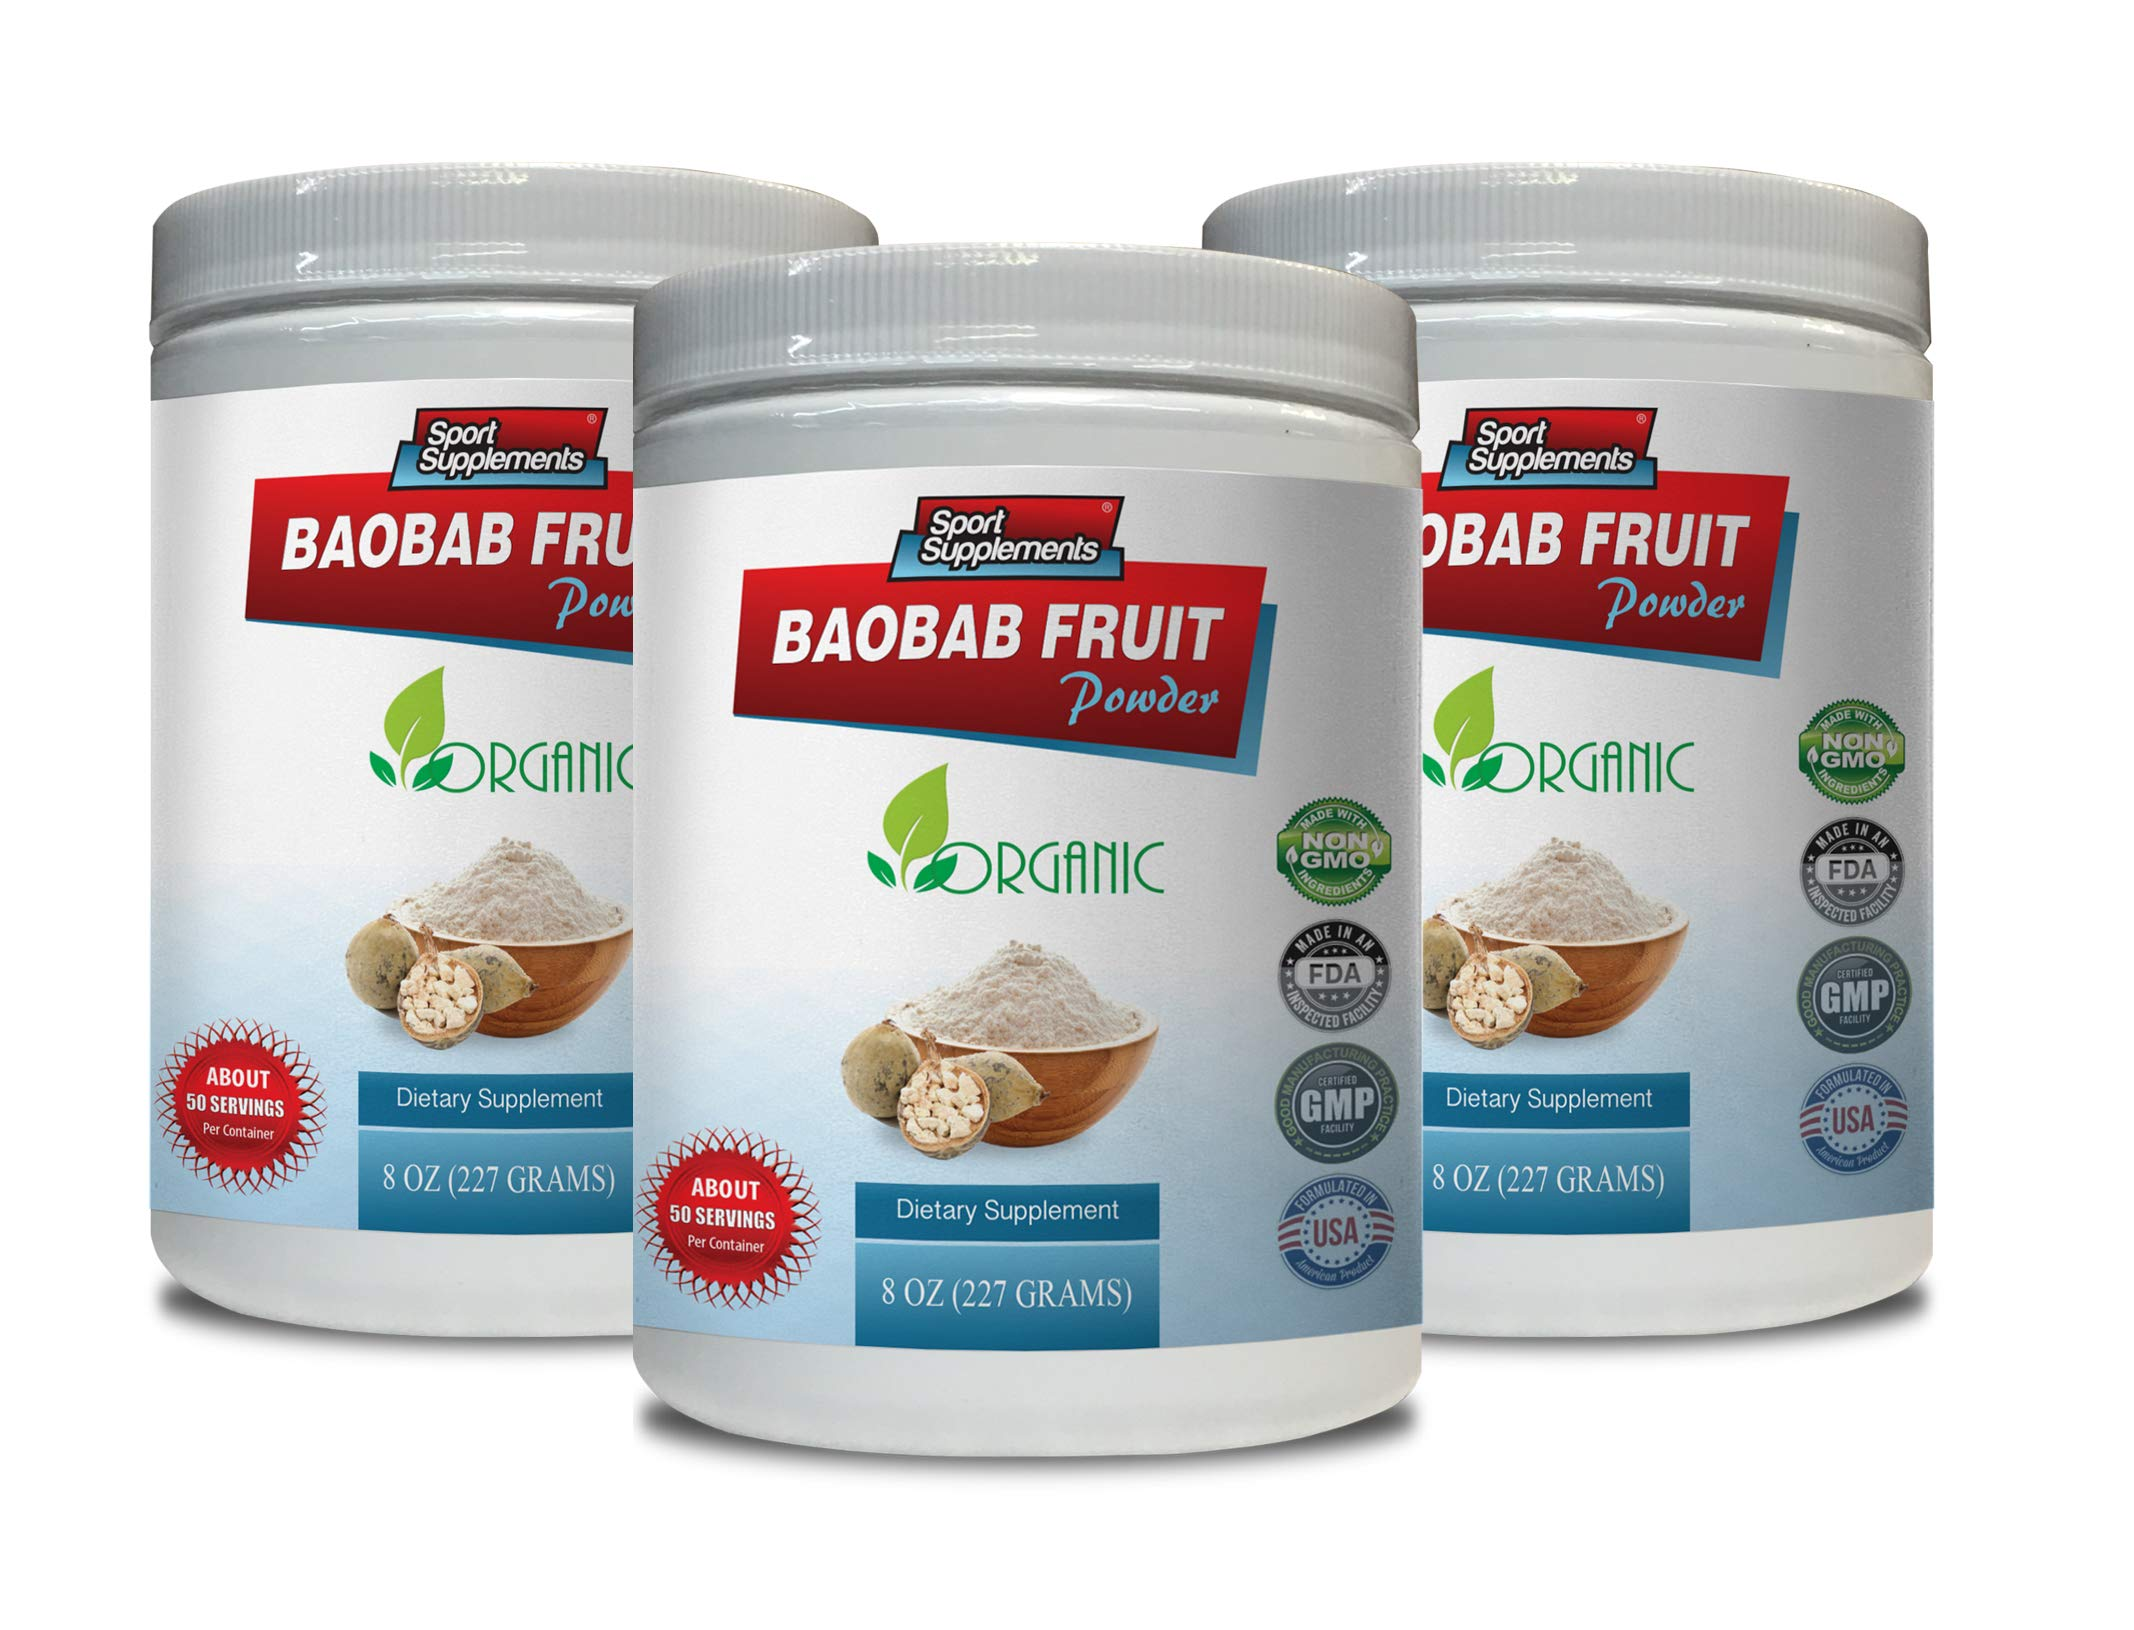 Immune Support Dietary Supplement - Baobab Fruit Powder - Organic Dietary Supplement - Digestive Detox Cleanse - 3 Cans 24 OZ (150 Servings)